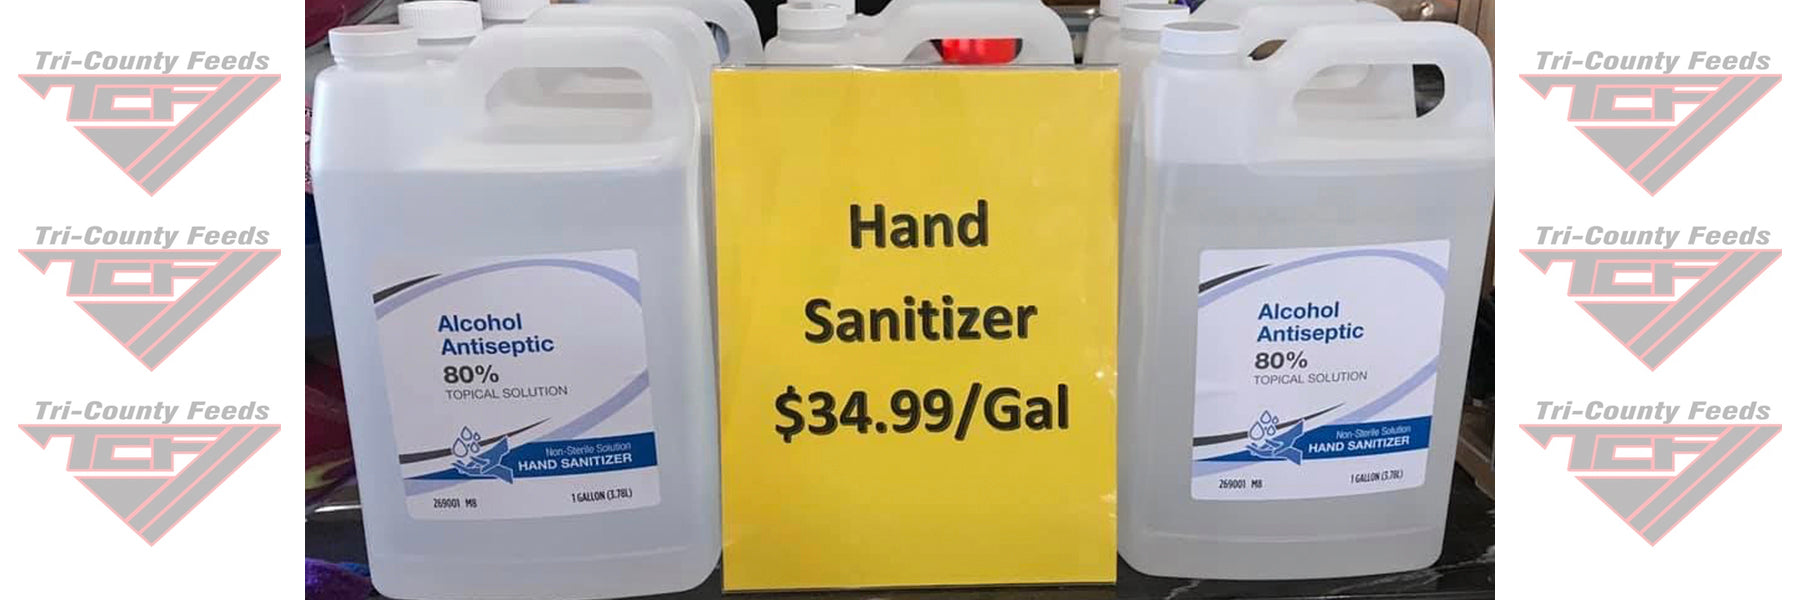 hand sanitizer special